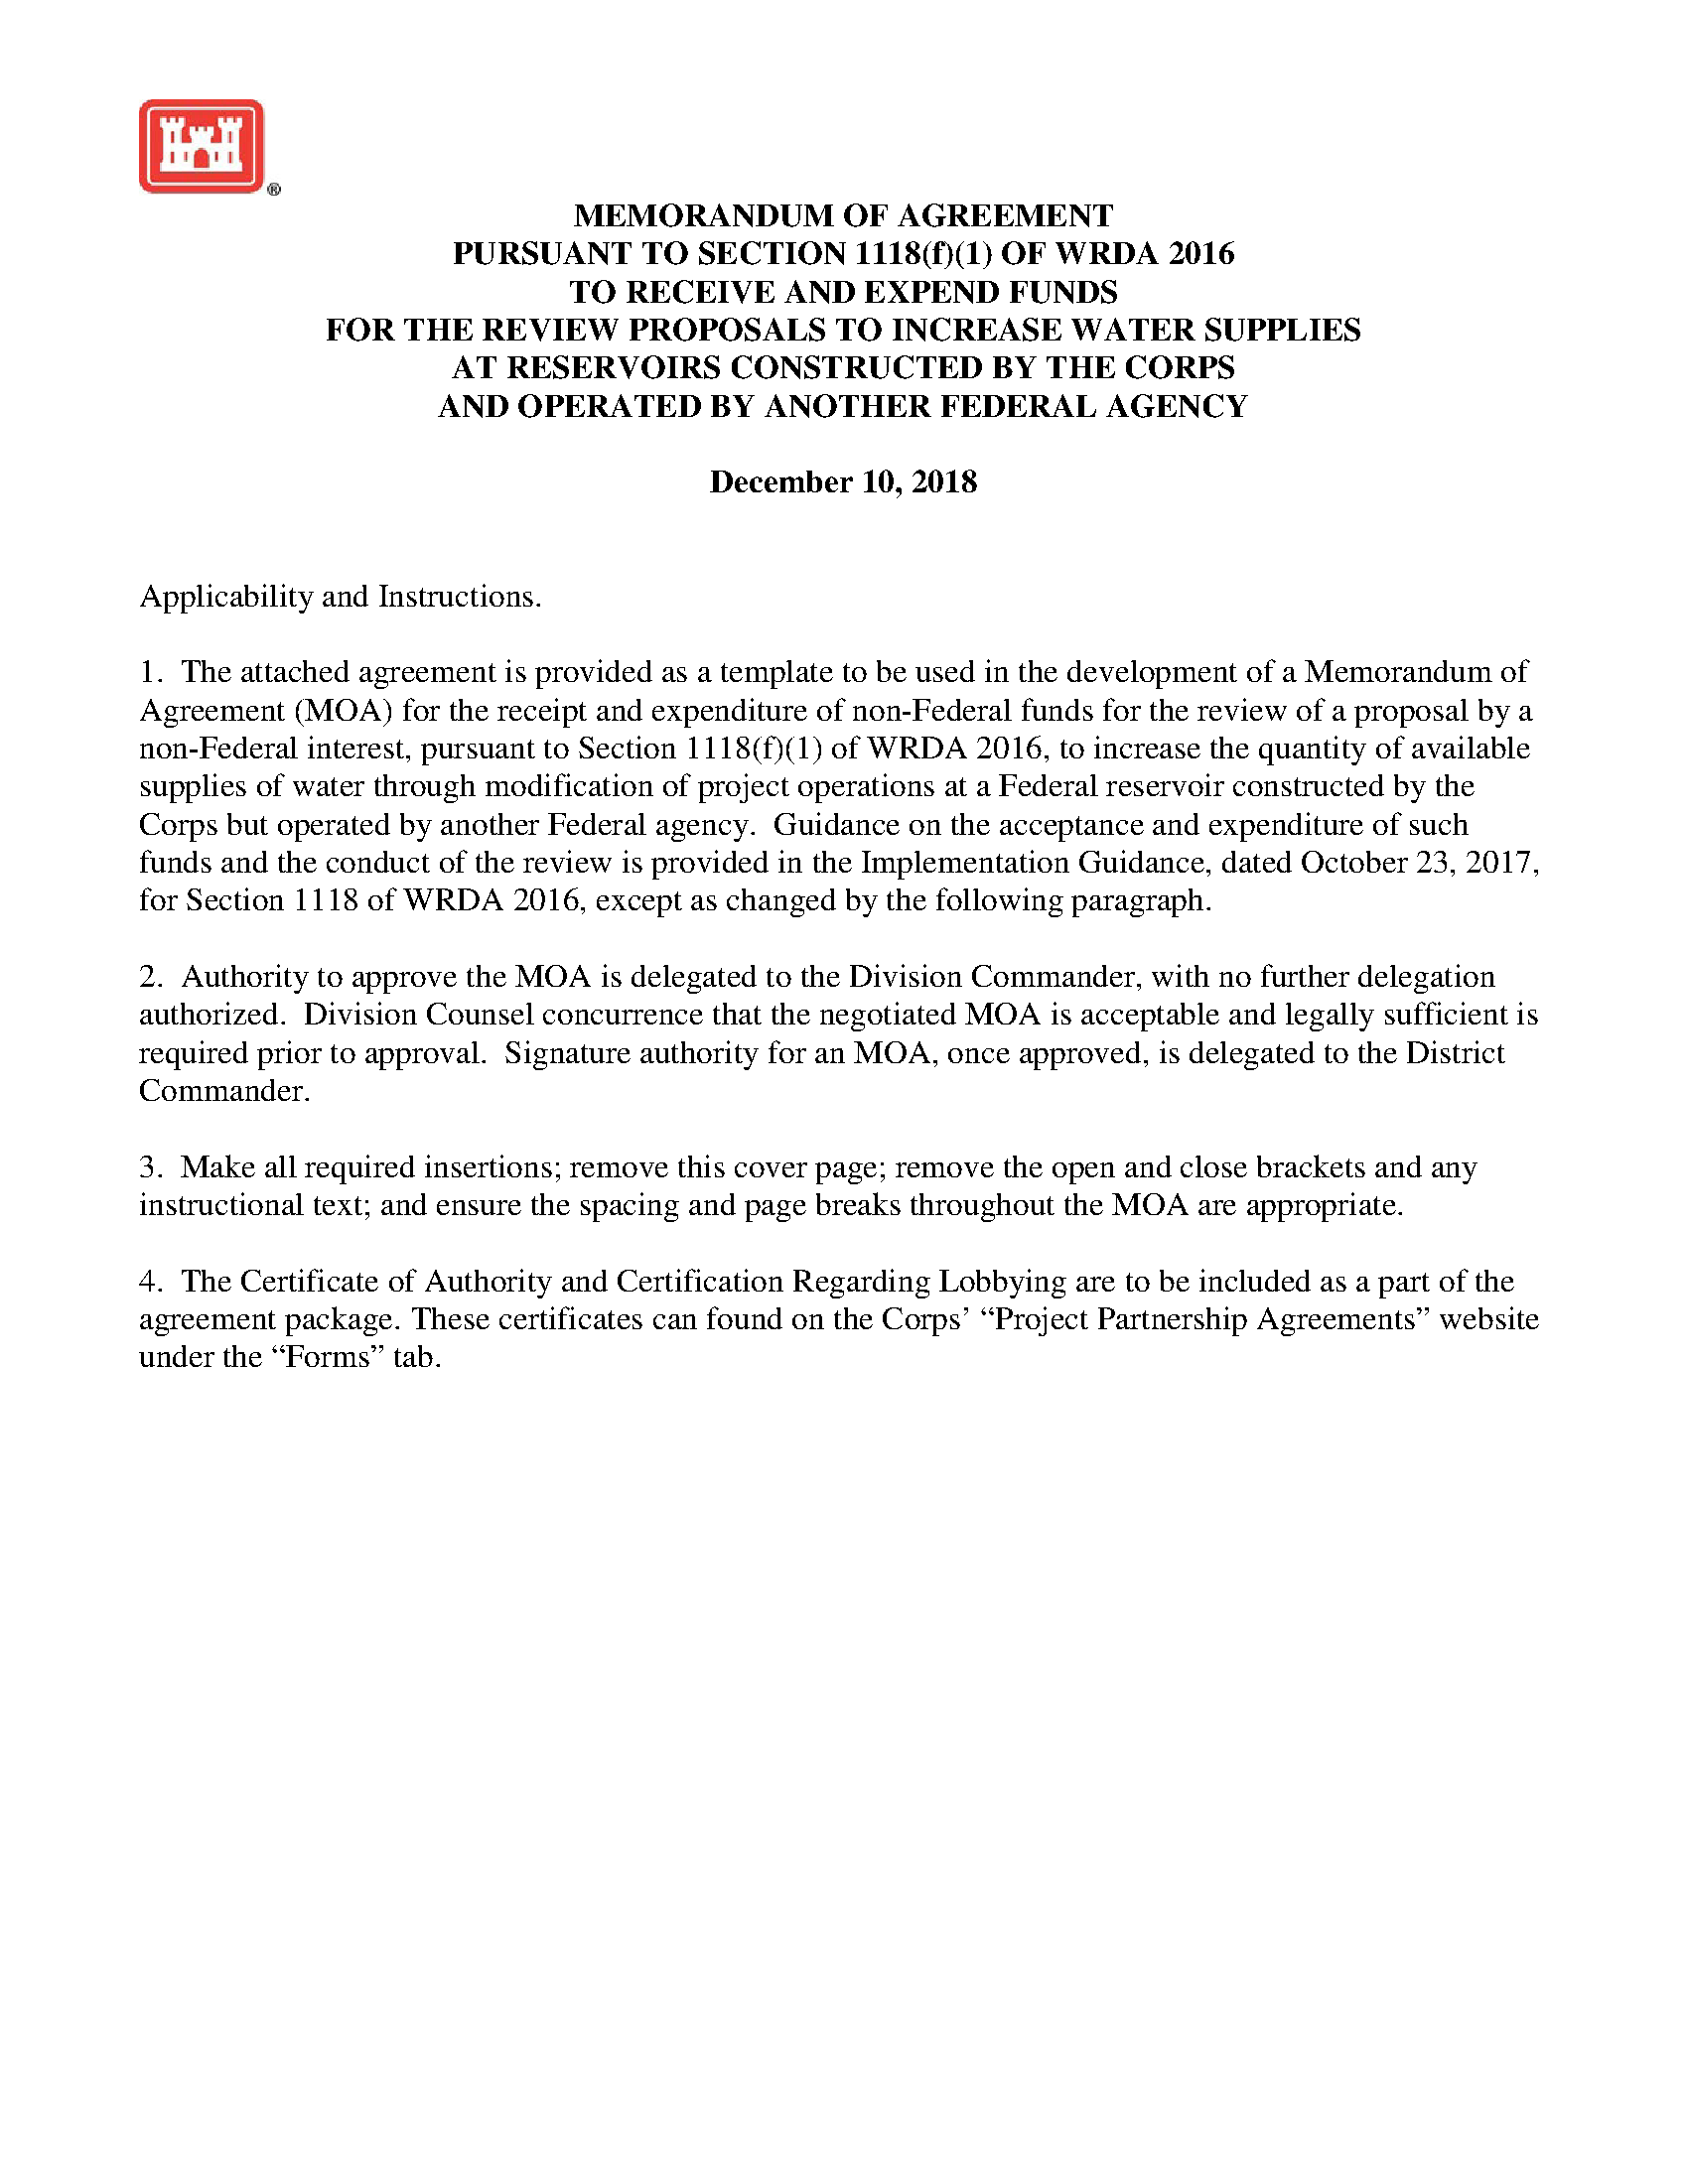 Memorandum Of Agreement Pursuant To Section 1118 F 1 Of Wrda 2016